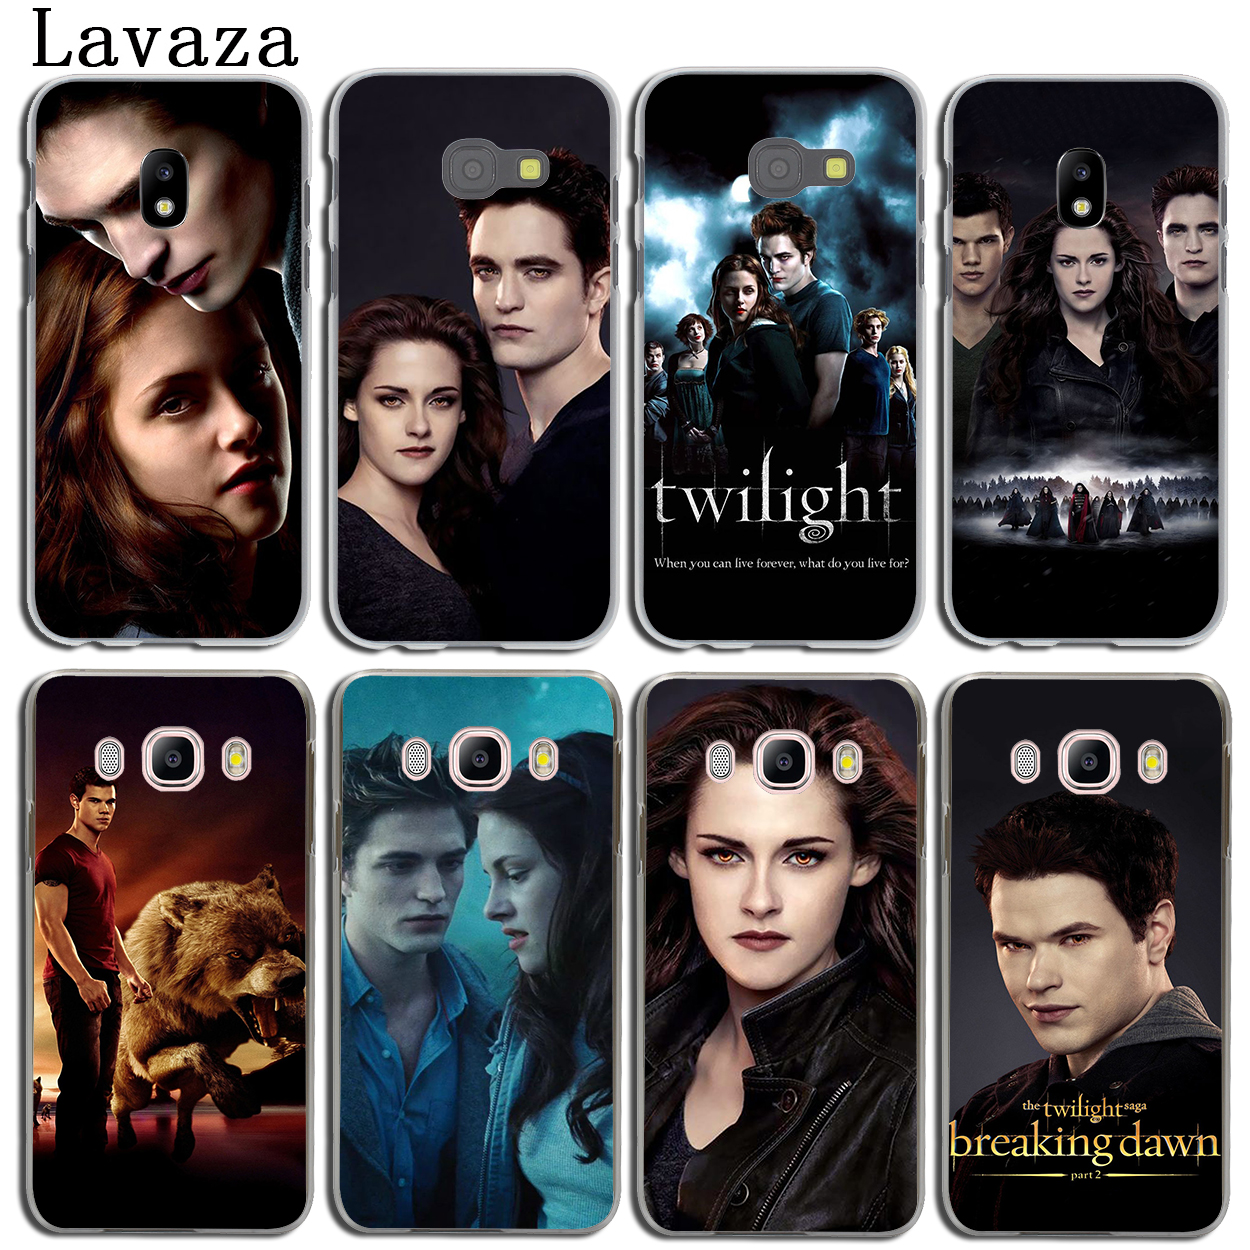 The Twilight Saga Breaking Dawn Part 2 Phone Case for Samsung Galaxy J8 J7 Duo J6 J5 J4 Plus 2018 2017 2016 J2 J3 Prime 2015 image